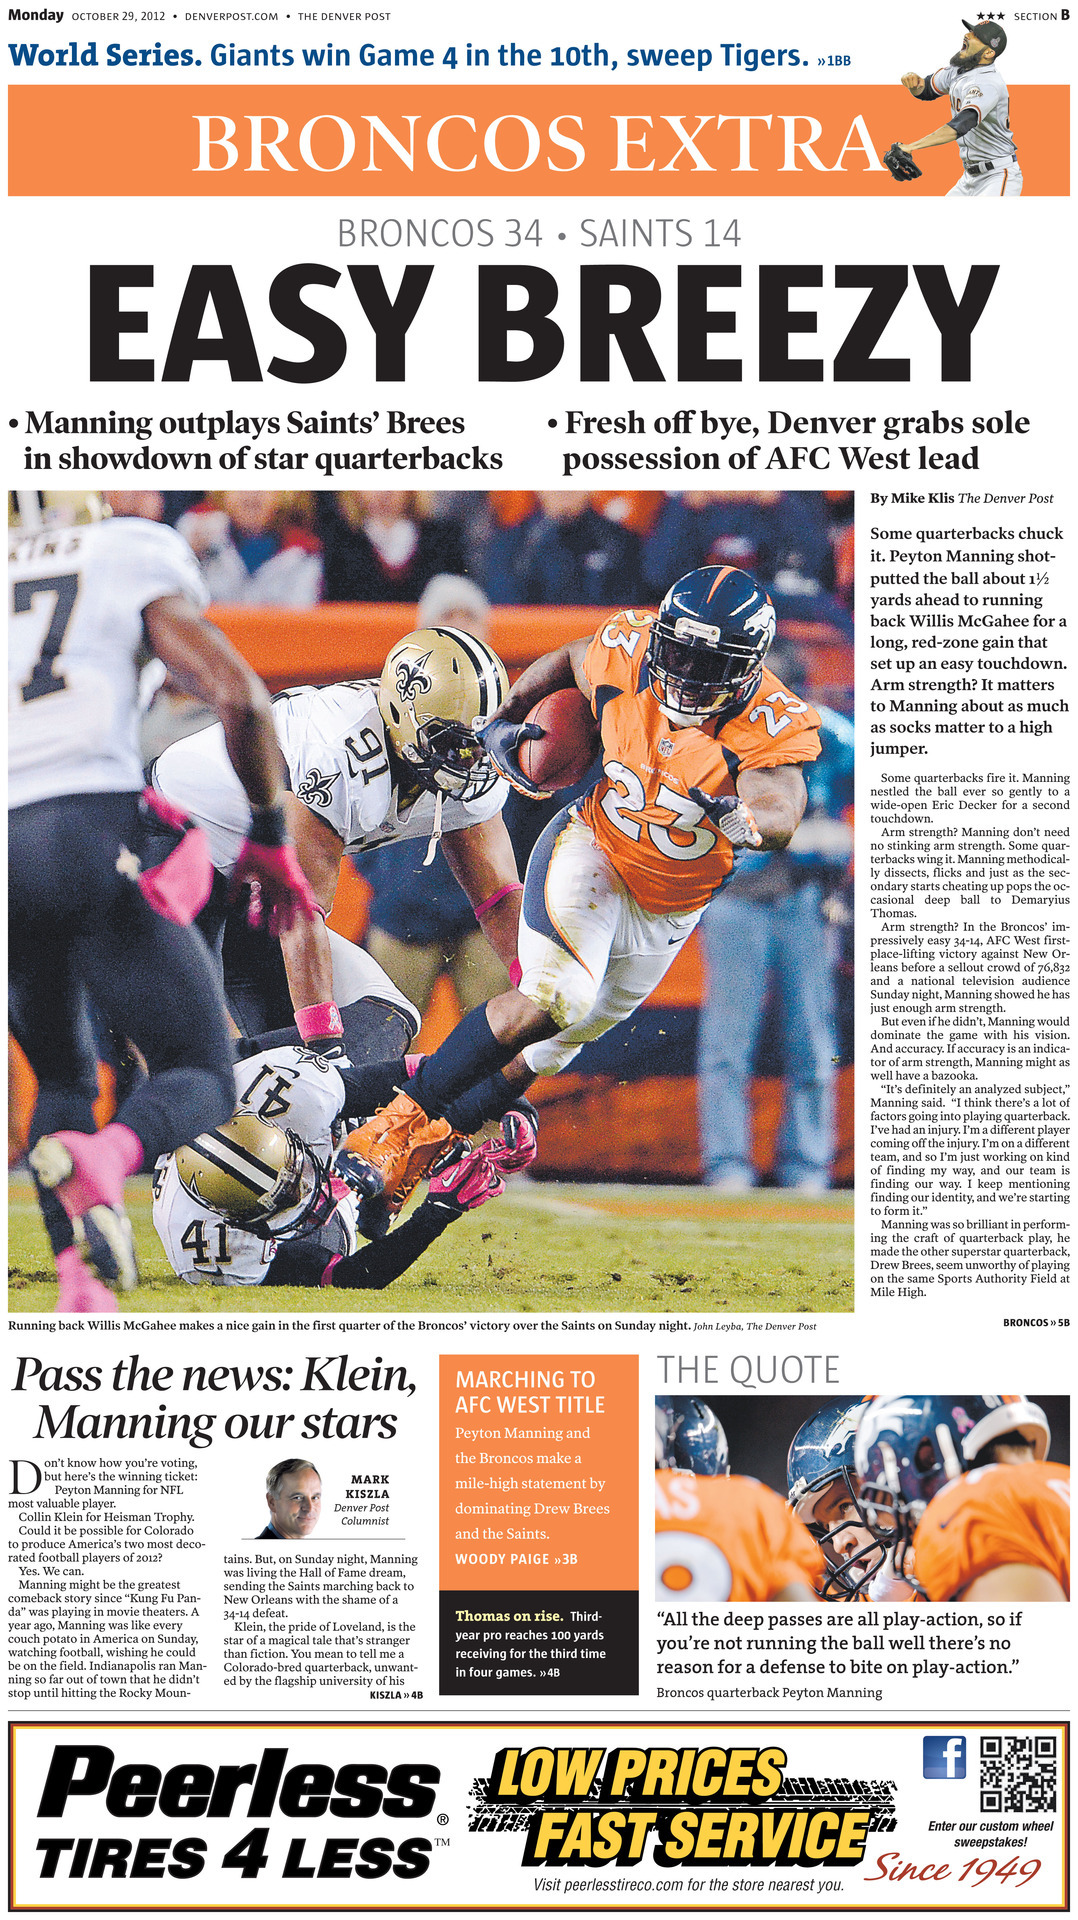 BRONCOS EXTRA: EASY BREEZY. Peyton Manning outplayed Saints' QB Drew Brees in a showdown of star quarterbacks in a nationally-televised primetime matchup. Full story…  More photos: Field level for Broncos-Saints  Woody Paige: Marching to an AFC West title  Mark Kiszla: Peyton Manning, Collin Klein for MVPs Demaryius Thomas: Developing into elite deep threat Broncos' D: Didn't sit back in win over Saints Harris, Carter: Step in for Tracy Porter Drew Brees: Rare off game Threading the needle: Best and worst of Broncos/Saints  Boxscore: Broncos 34, Saints 14  First-and-Orange blog: Notes, analysis, buzz  Complete coverage of Denver Broncos from The Post